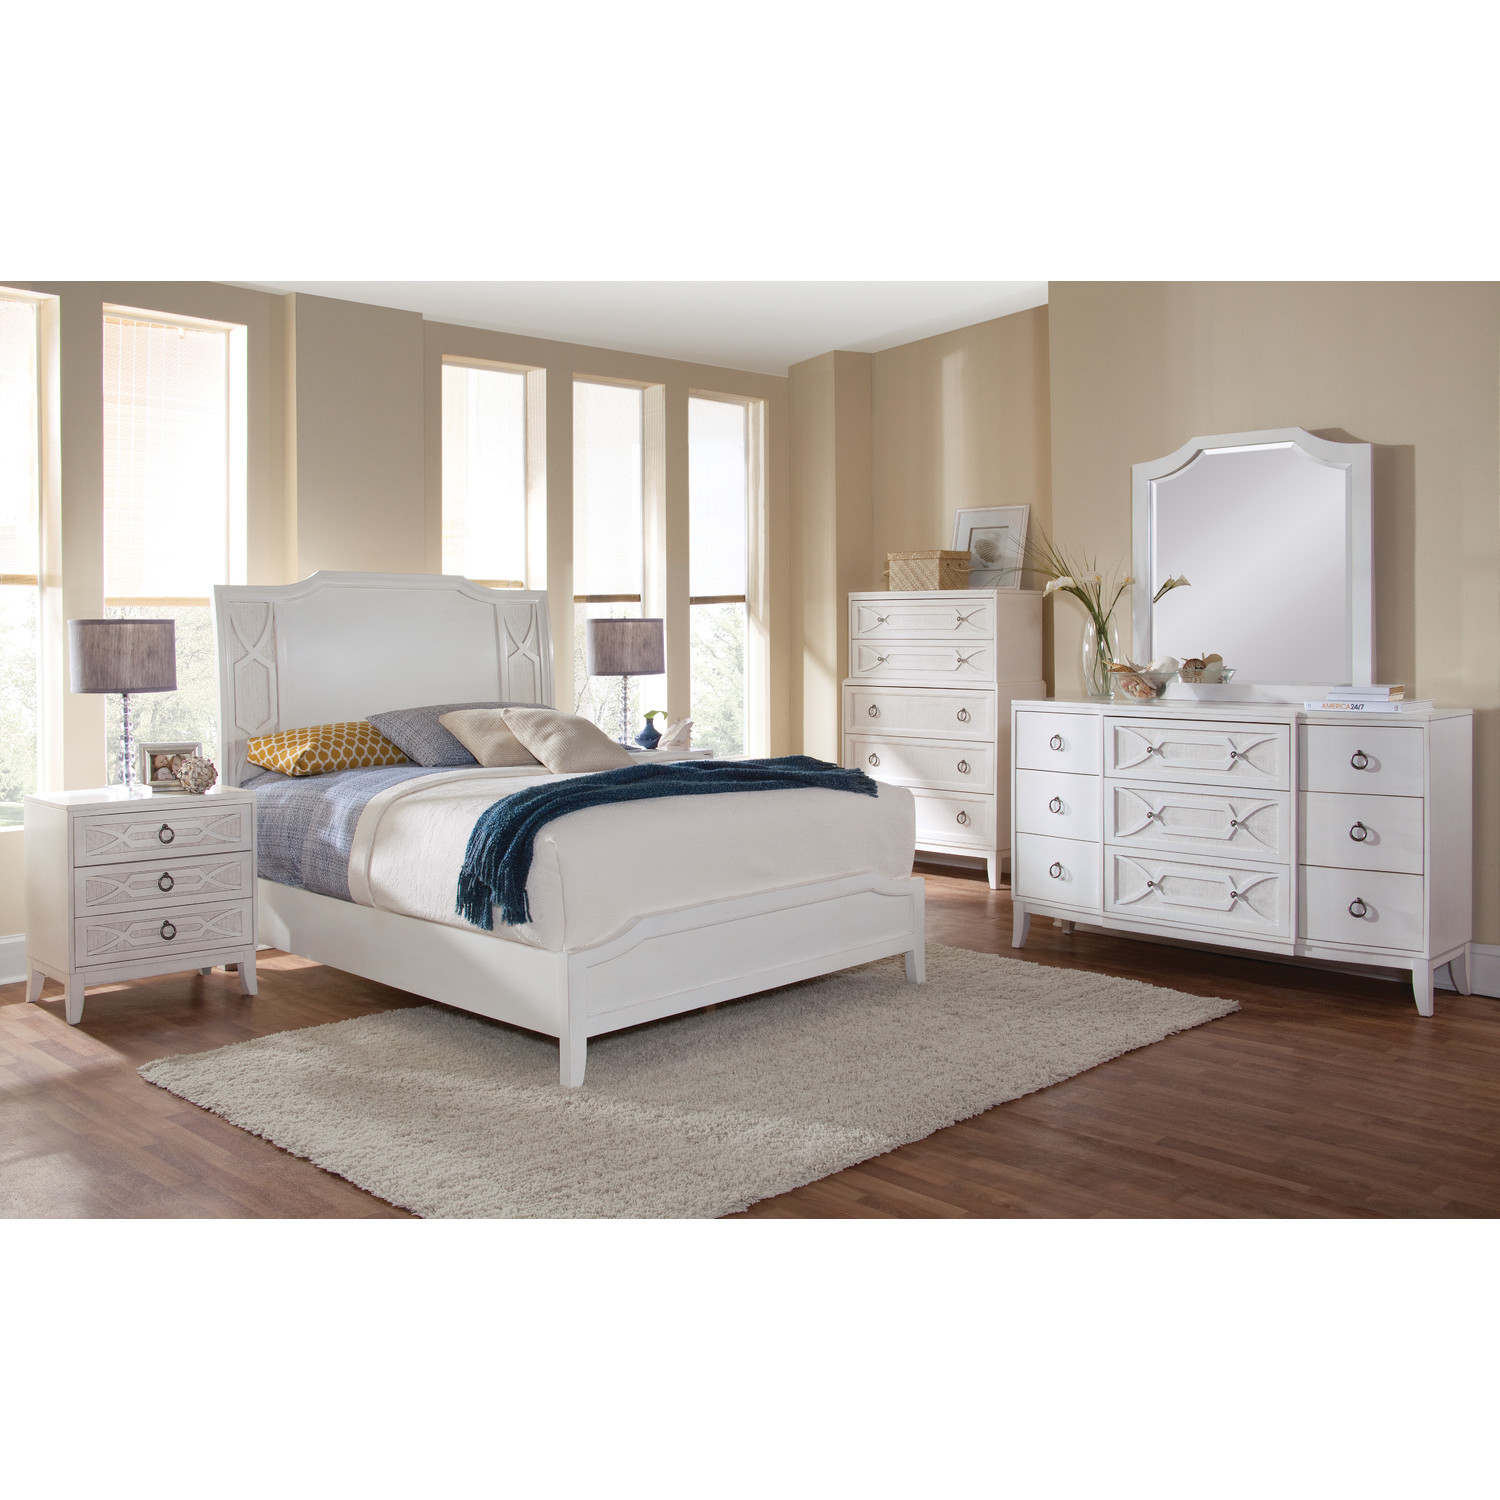 Grand Haven 9-Drawer Dresser - White Lace - AW-6410-290